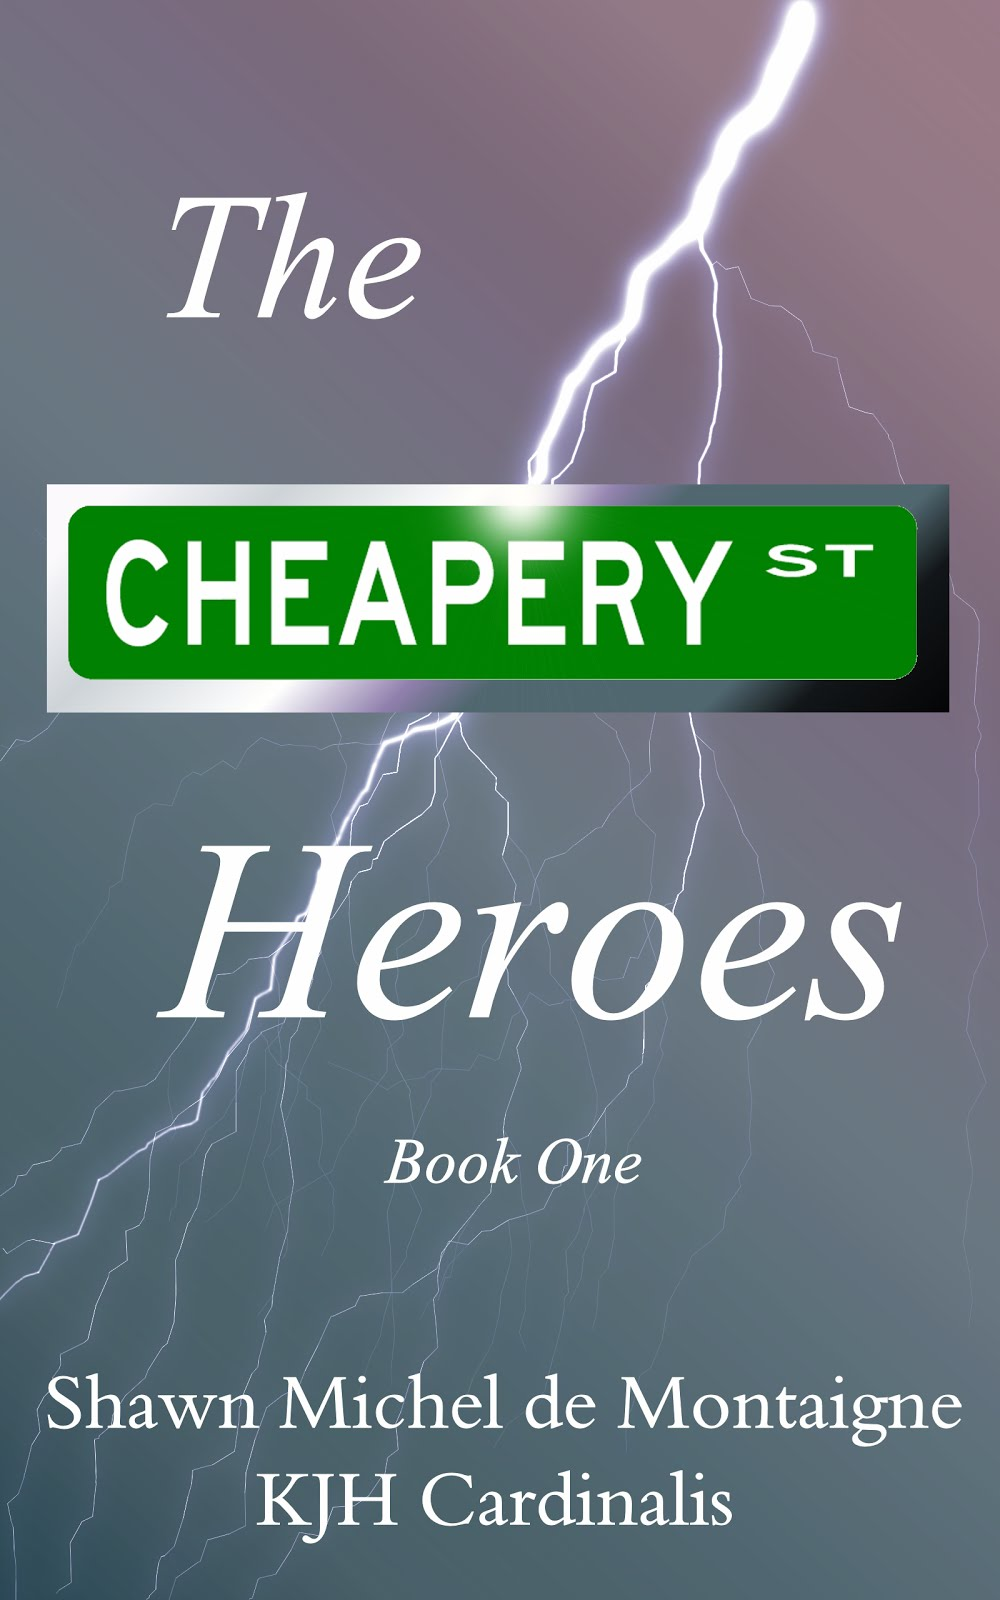 The Cheapery St. Heroes